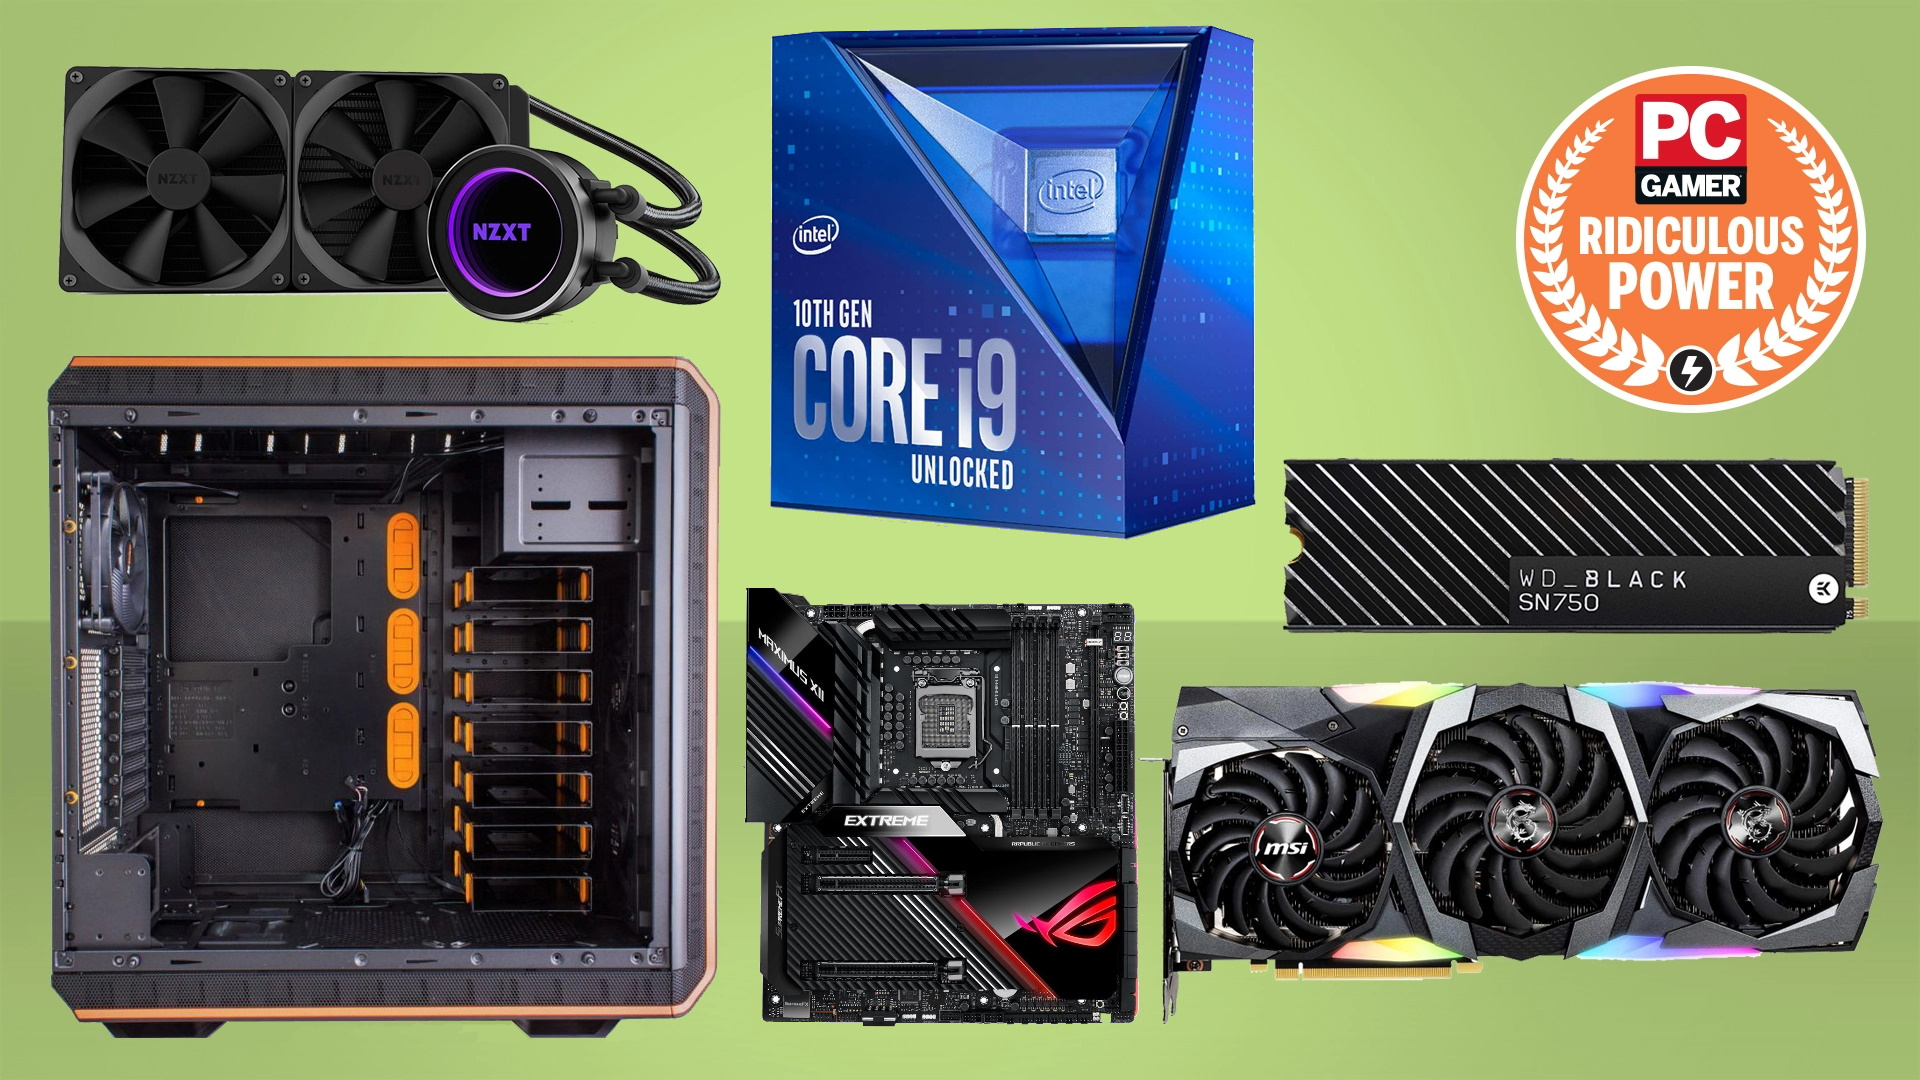 Best Pc Builds 2021 Extreme gaming PC build 2020 | PC Gamer